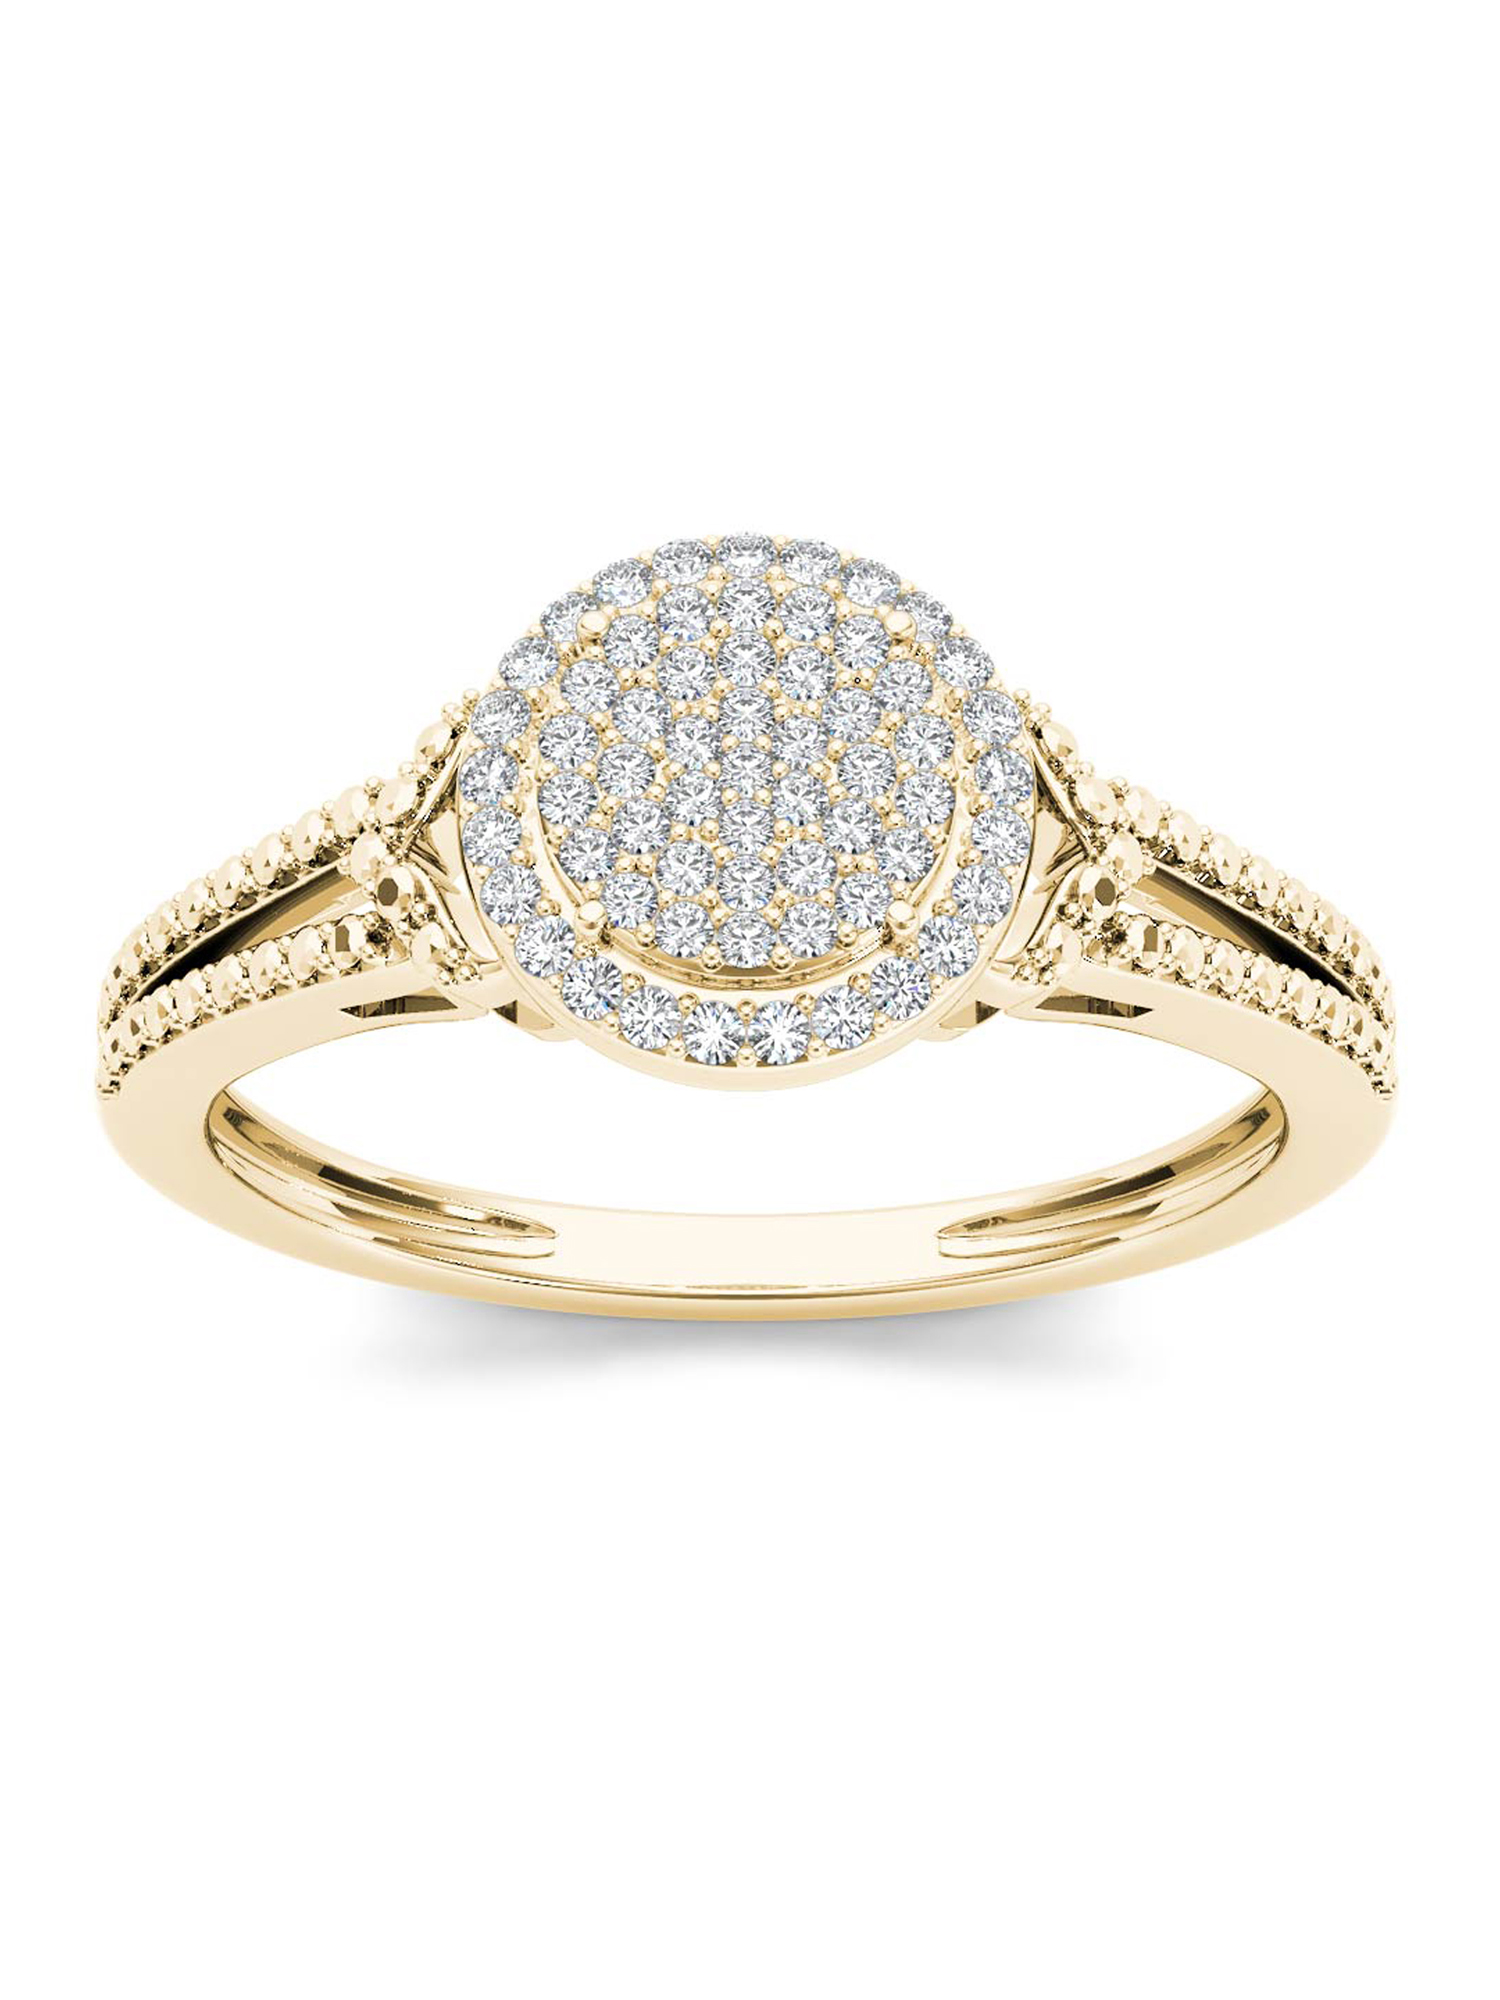 Imperial 1 4Ct TDW Diamond 10K Rose Gold Halo Engagement Ring by Imperial Jewels